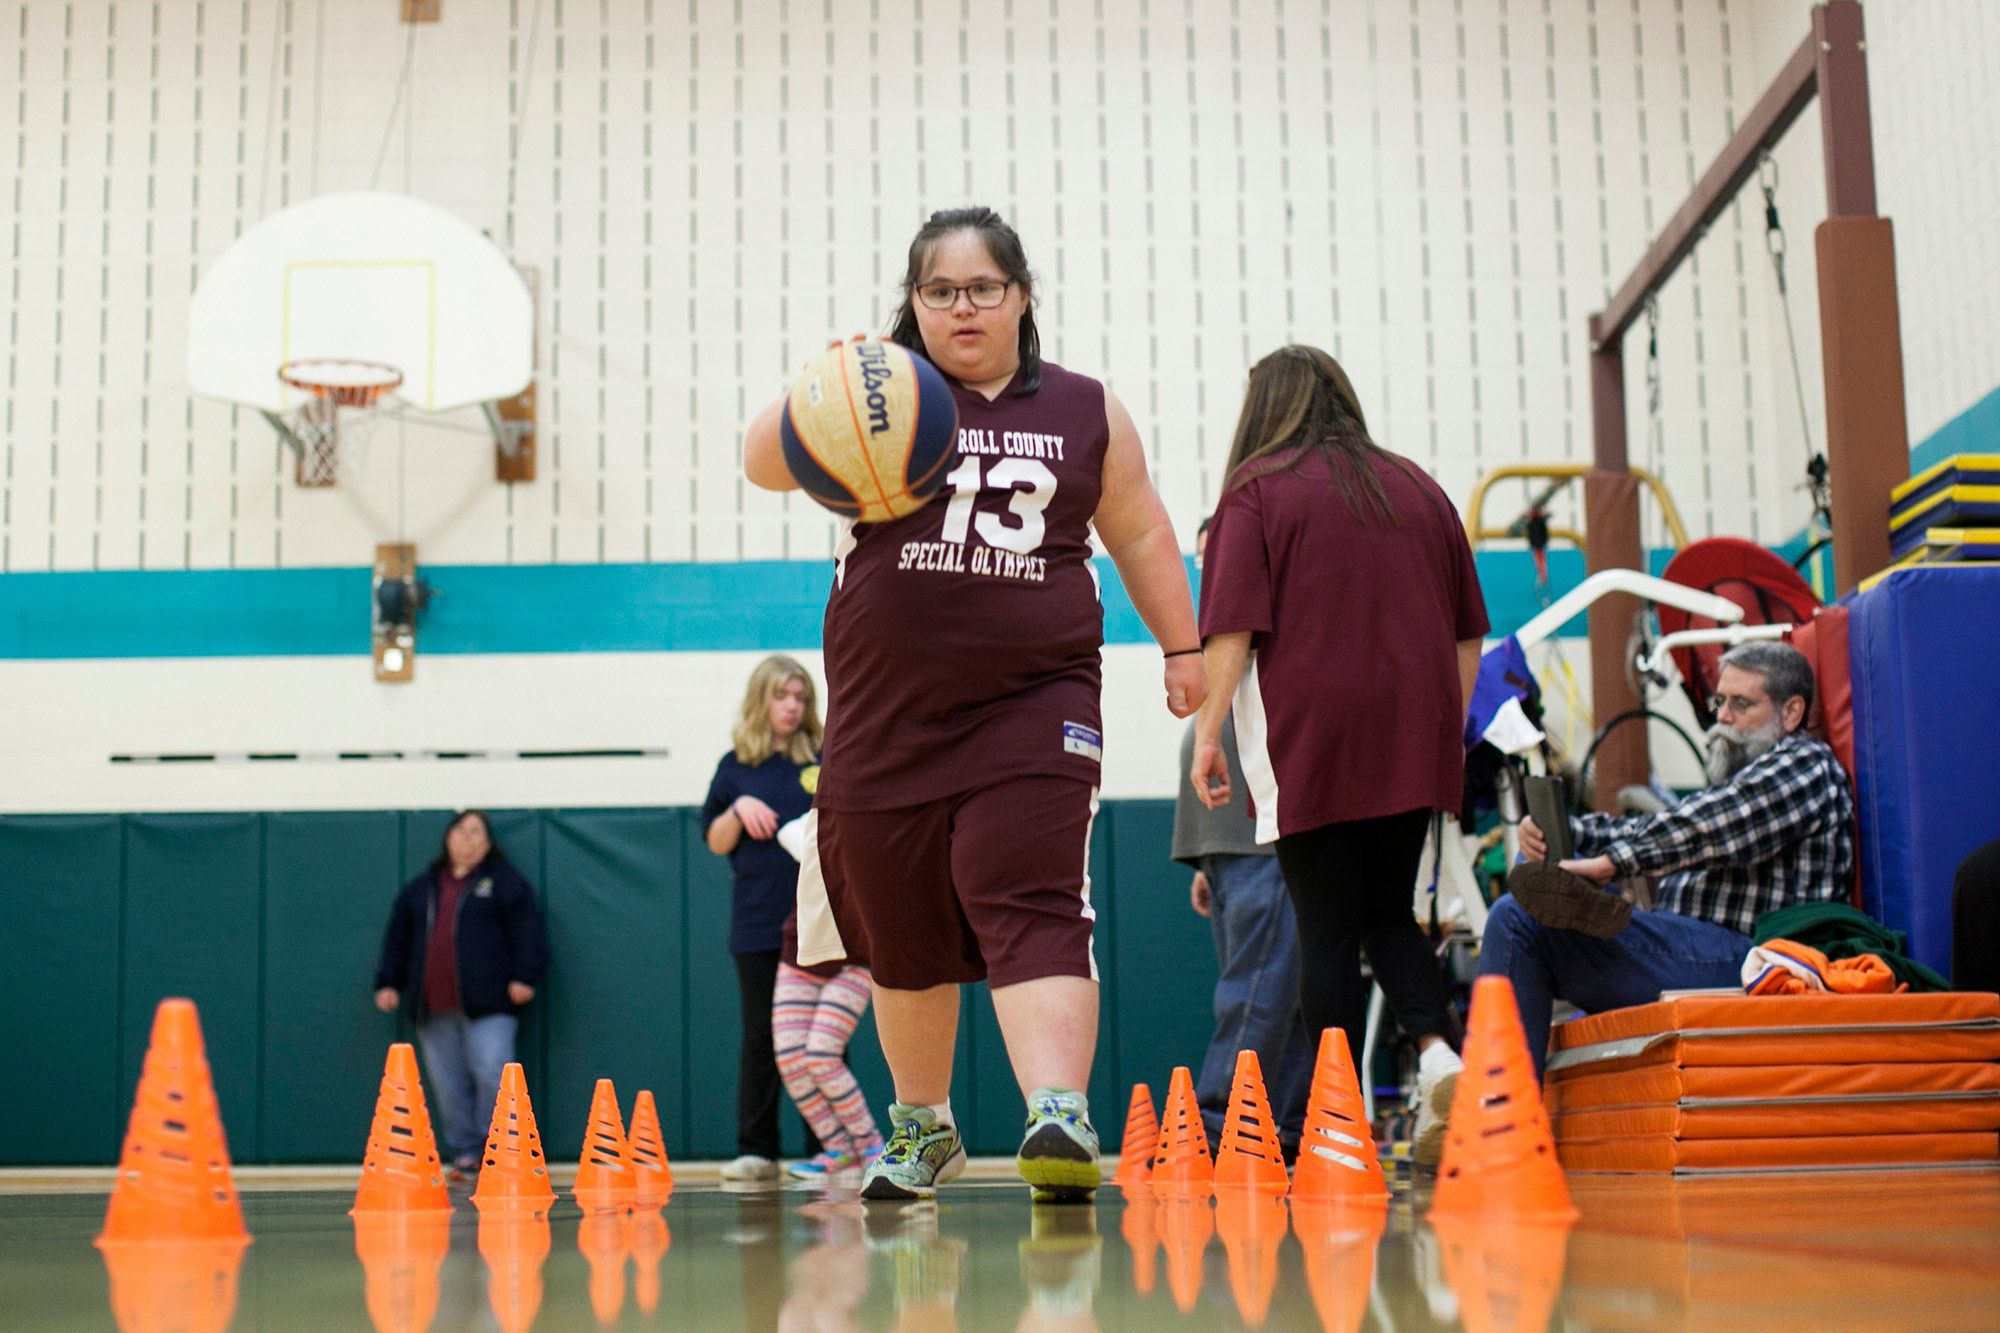 Rebecca Guldan, 14, concentrates on a basketball drill during practice at Carroll Springs School in Westminster, Md., on Wednesday, Dec. 6, 2017.